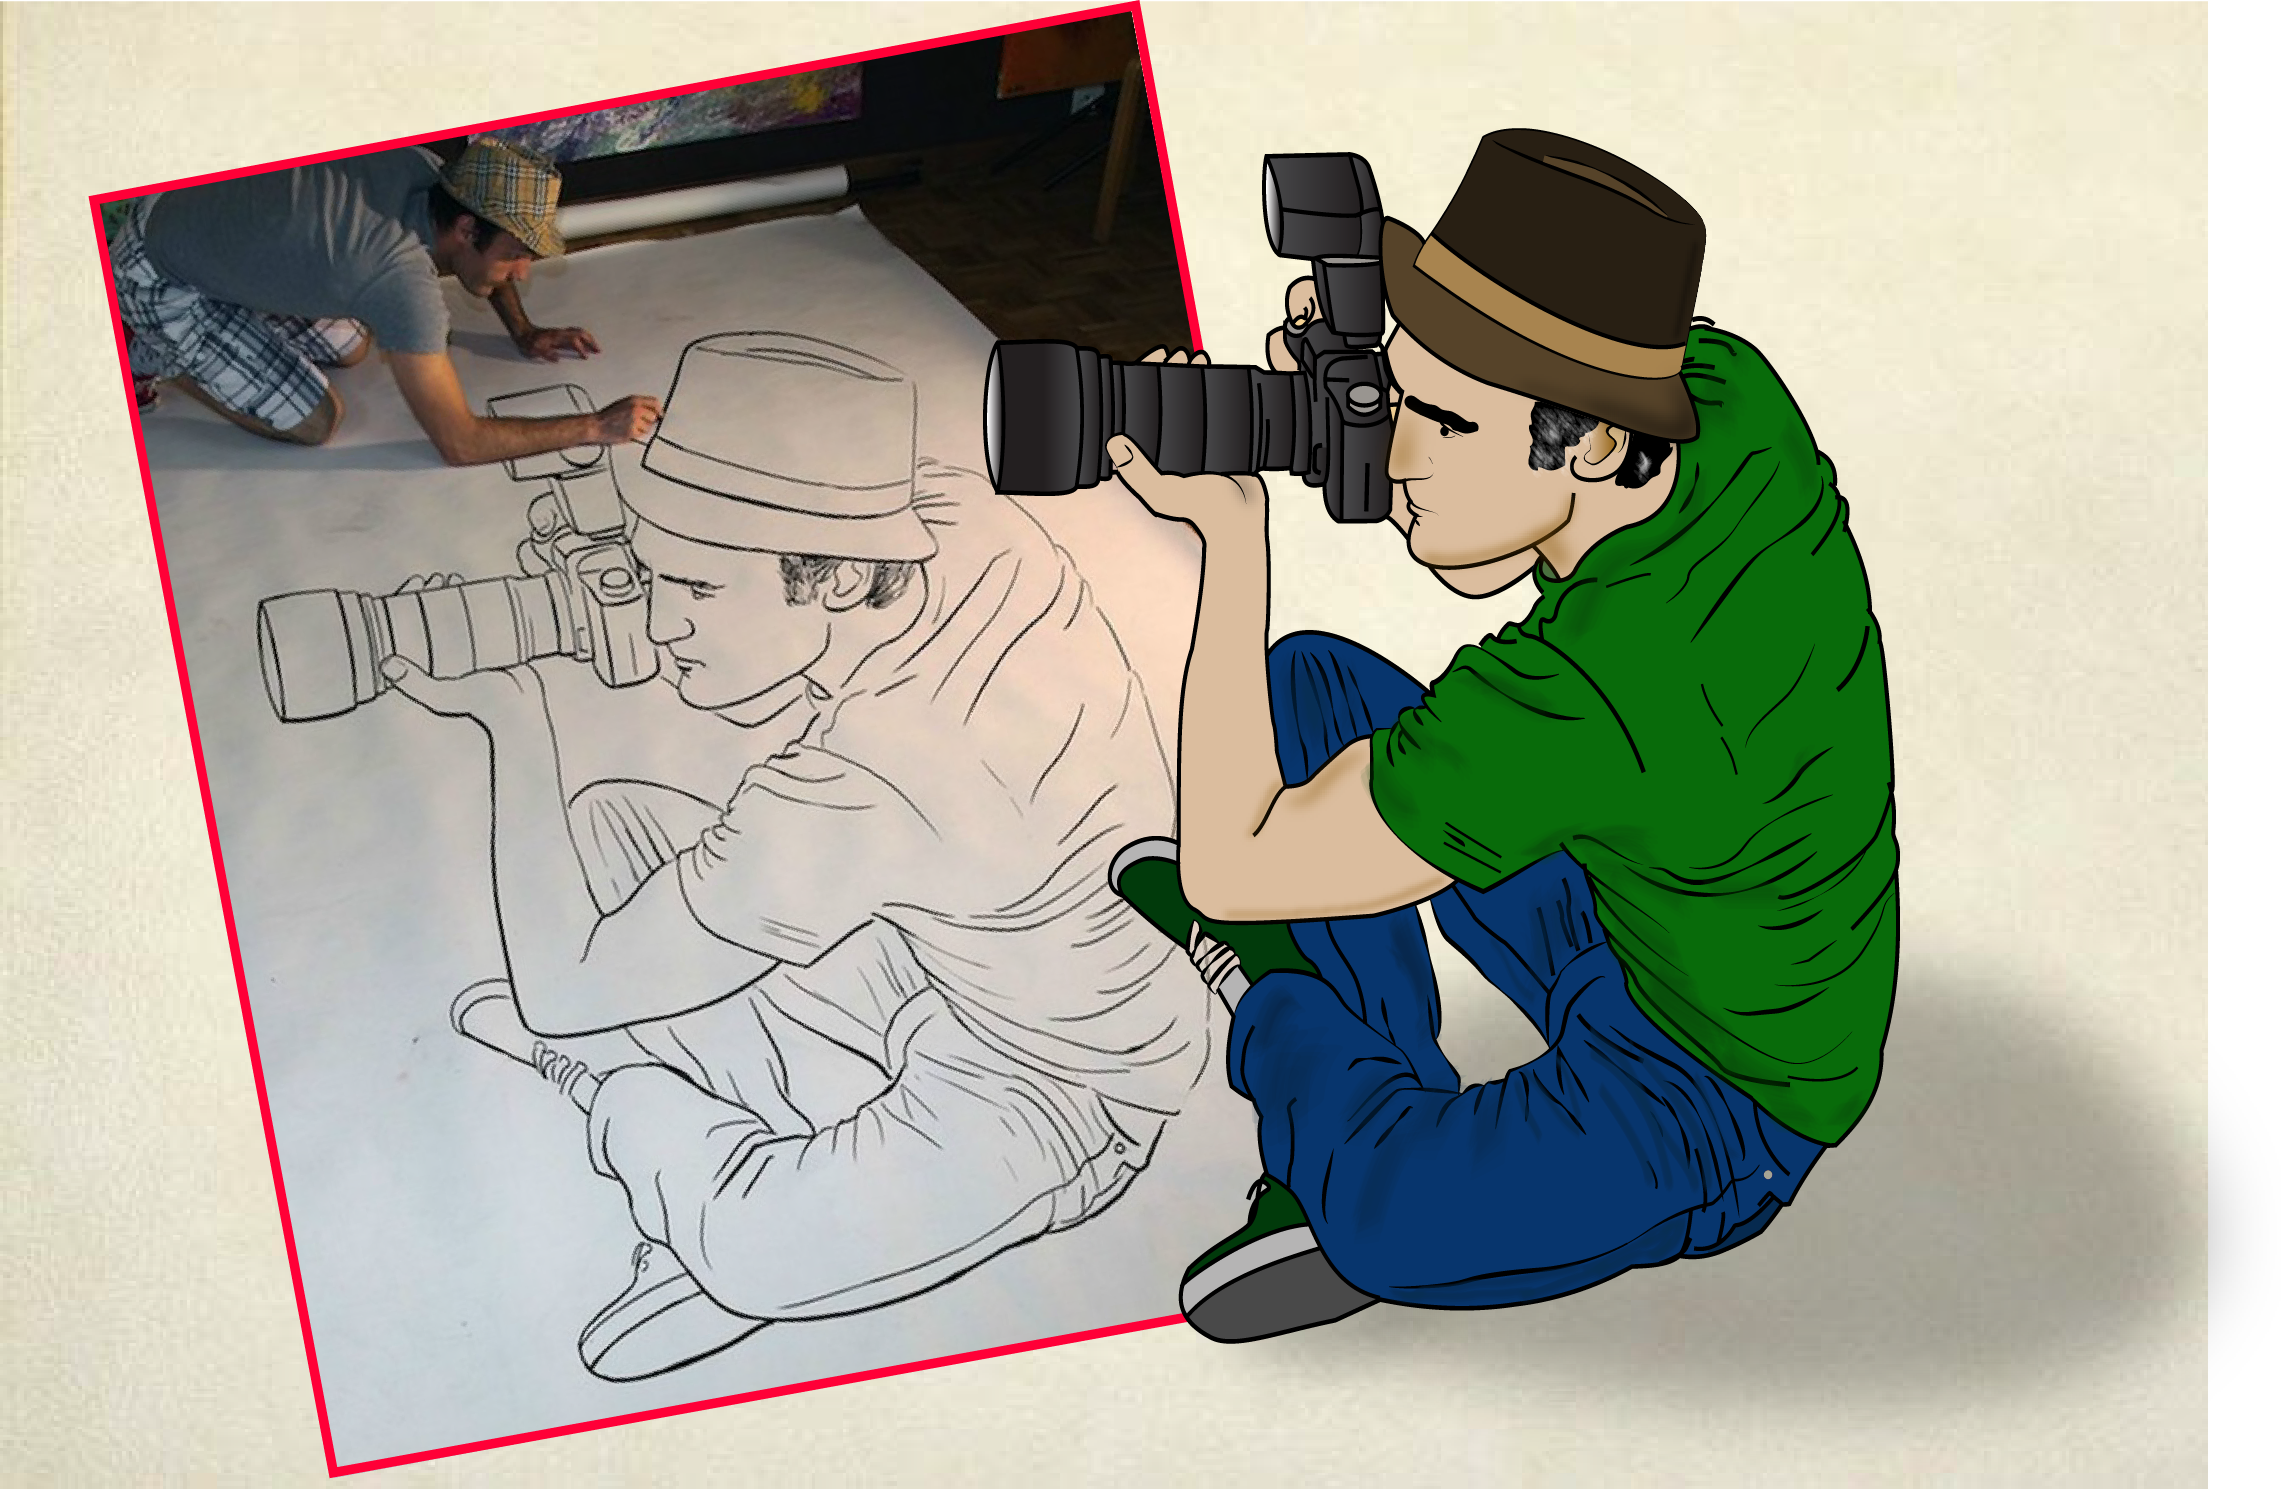 convert skatch or pencil drawing to vector